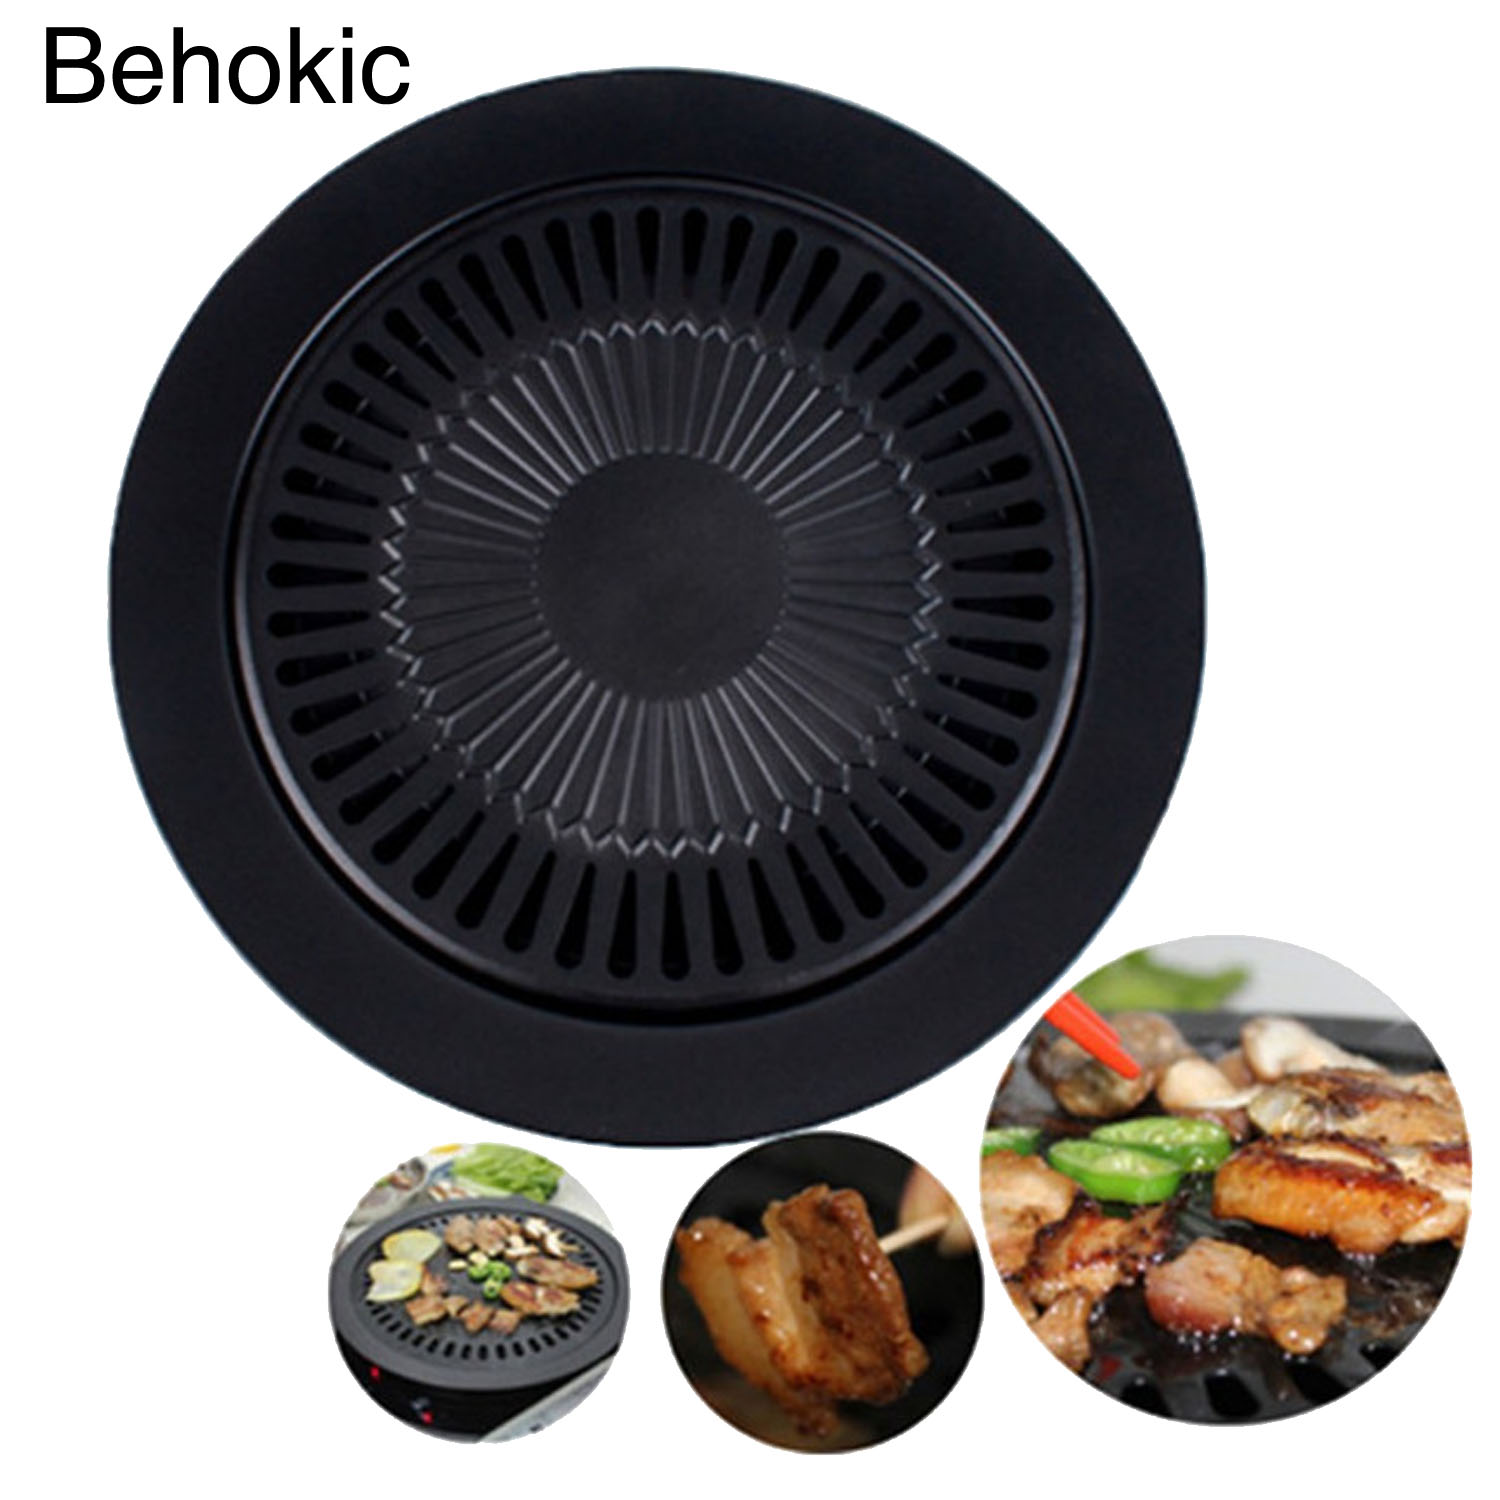 Buy smokeless stovetop grill and get free shipping on AliExpress.com